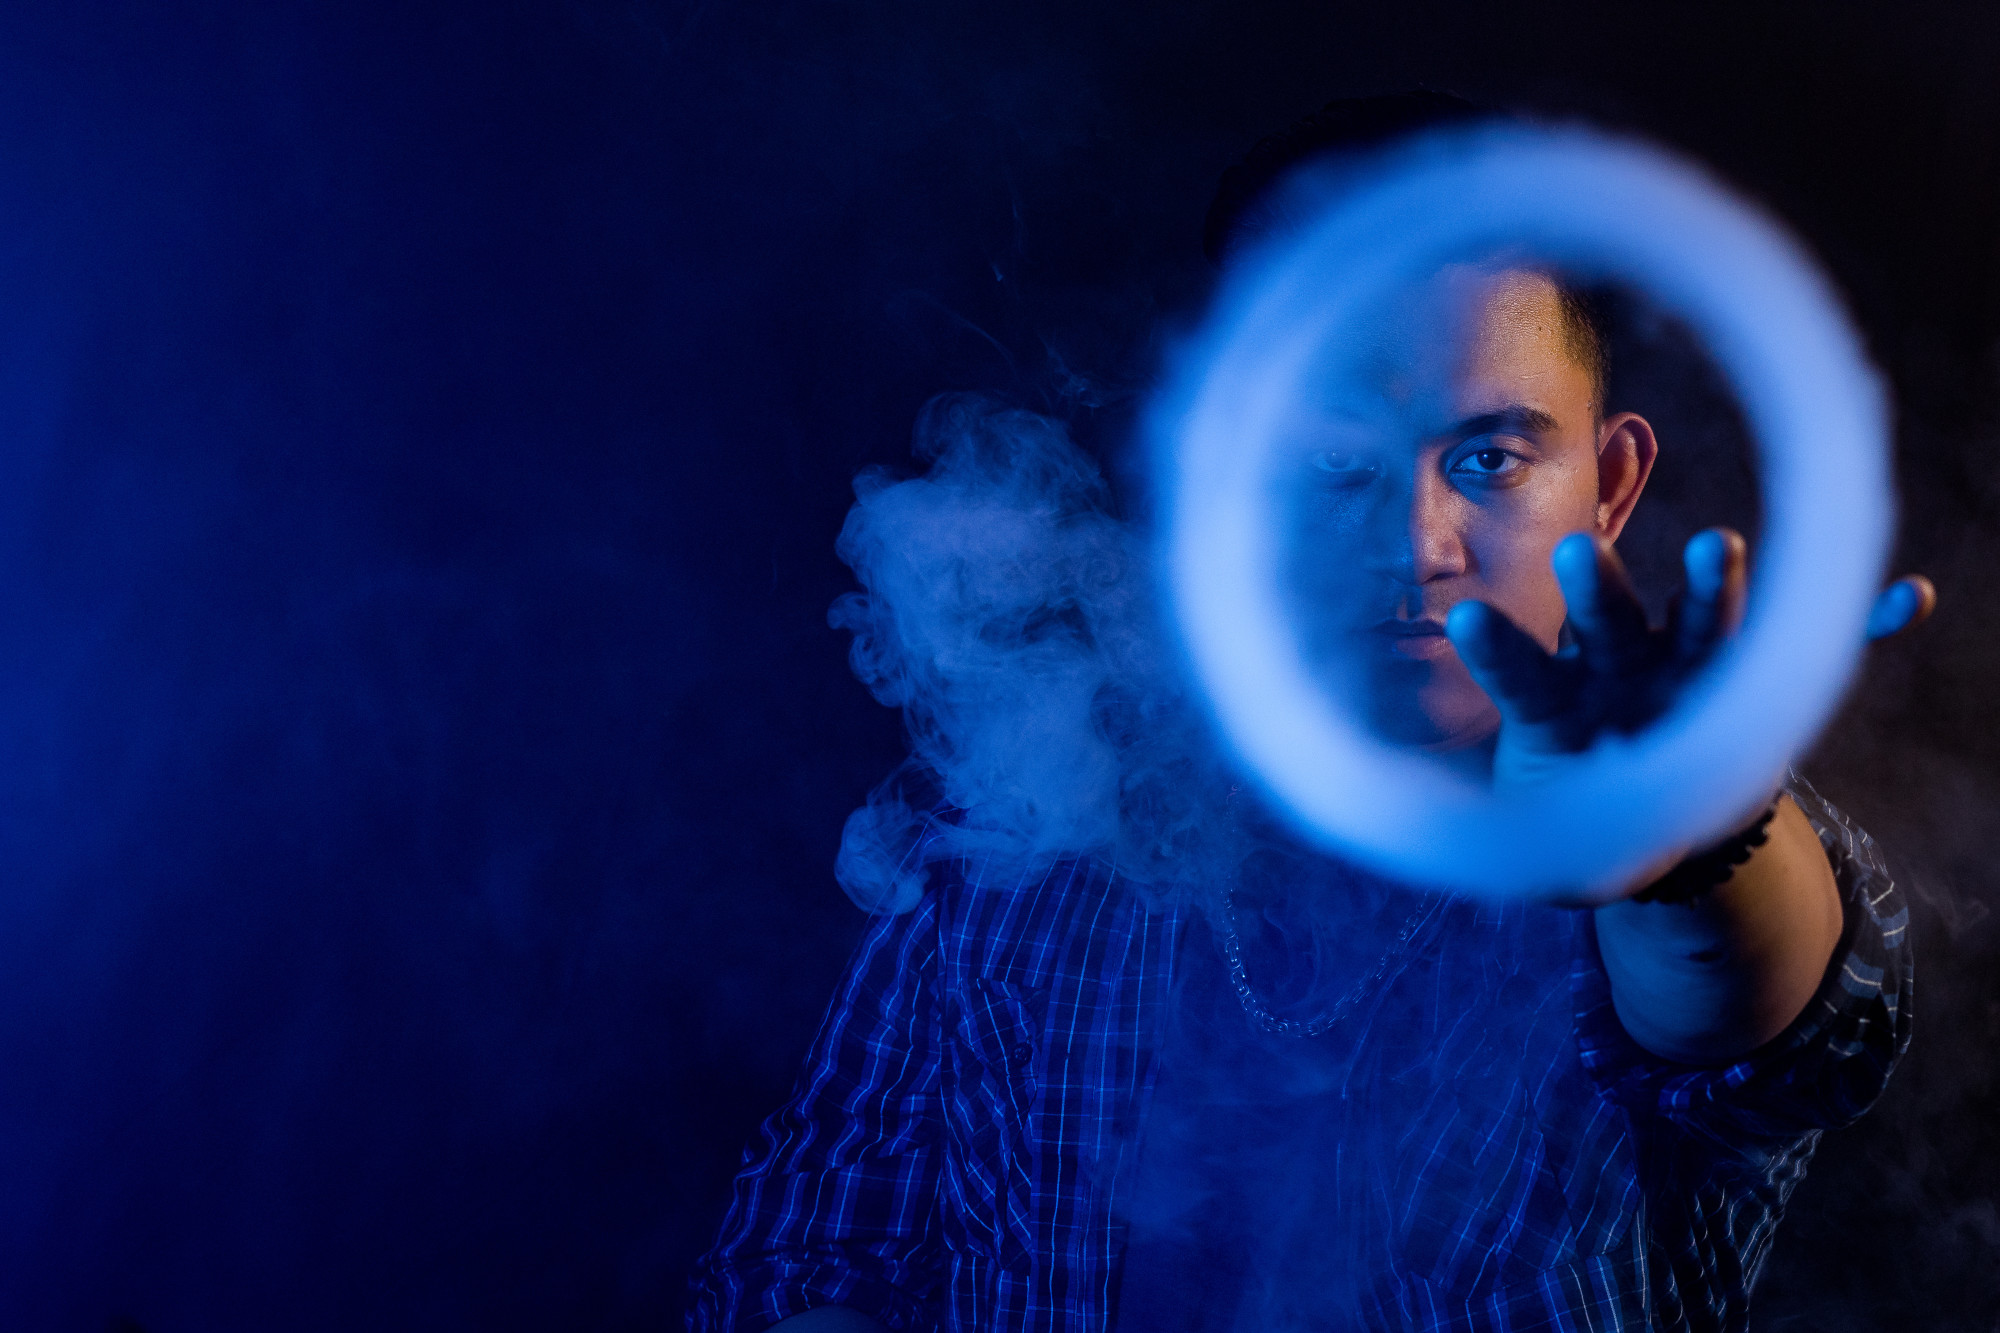 Impress Your Friends: How to Blow Smoke Rings with Your Vape